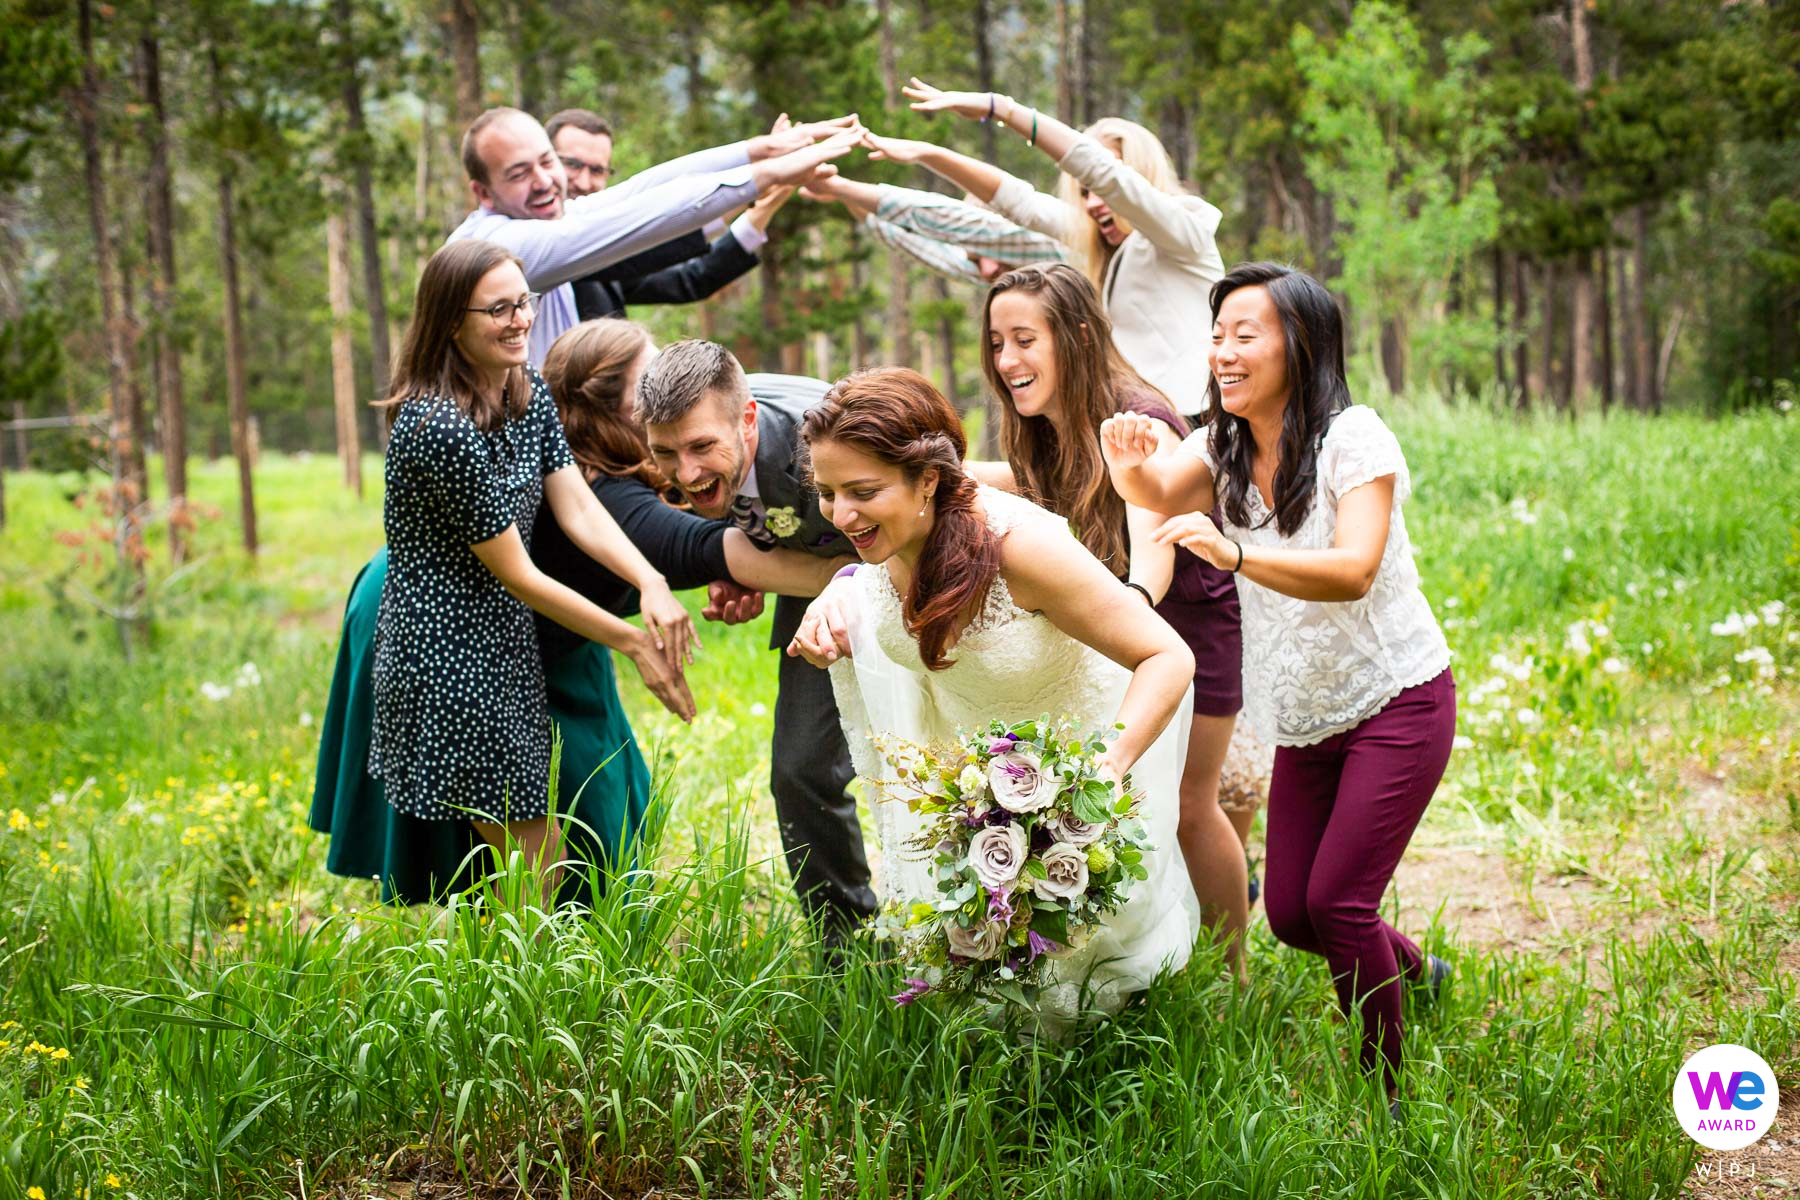 Nederland, Colorado Backyard Elopement Photography   Close friends goofed off with the couple all day, giving them well-wishing bum-pats on the way through the tunnel of hands